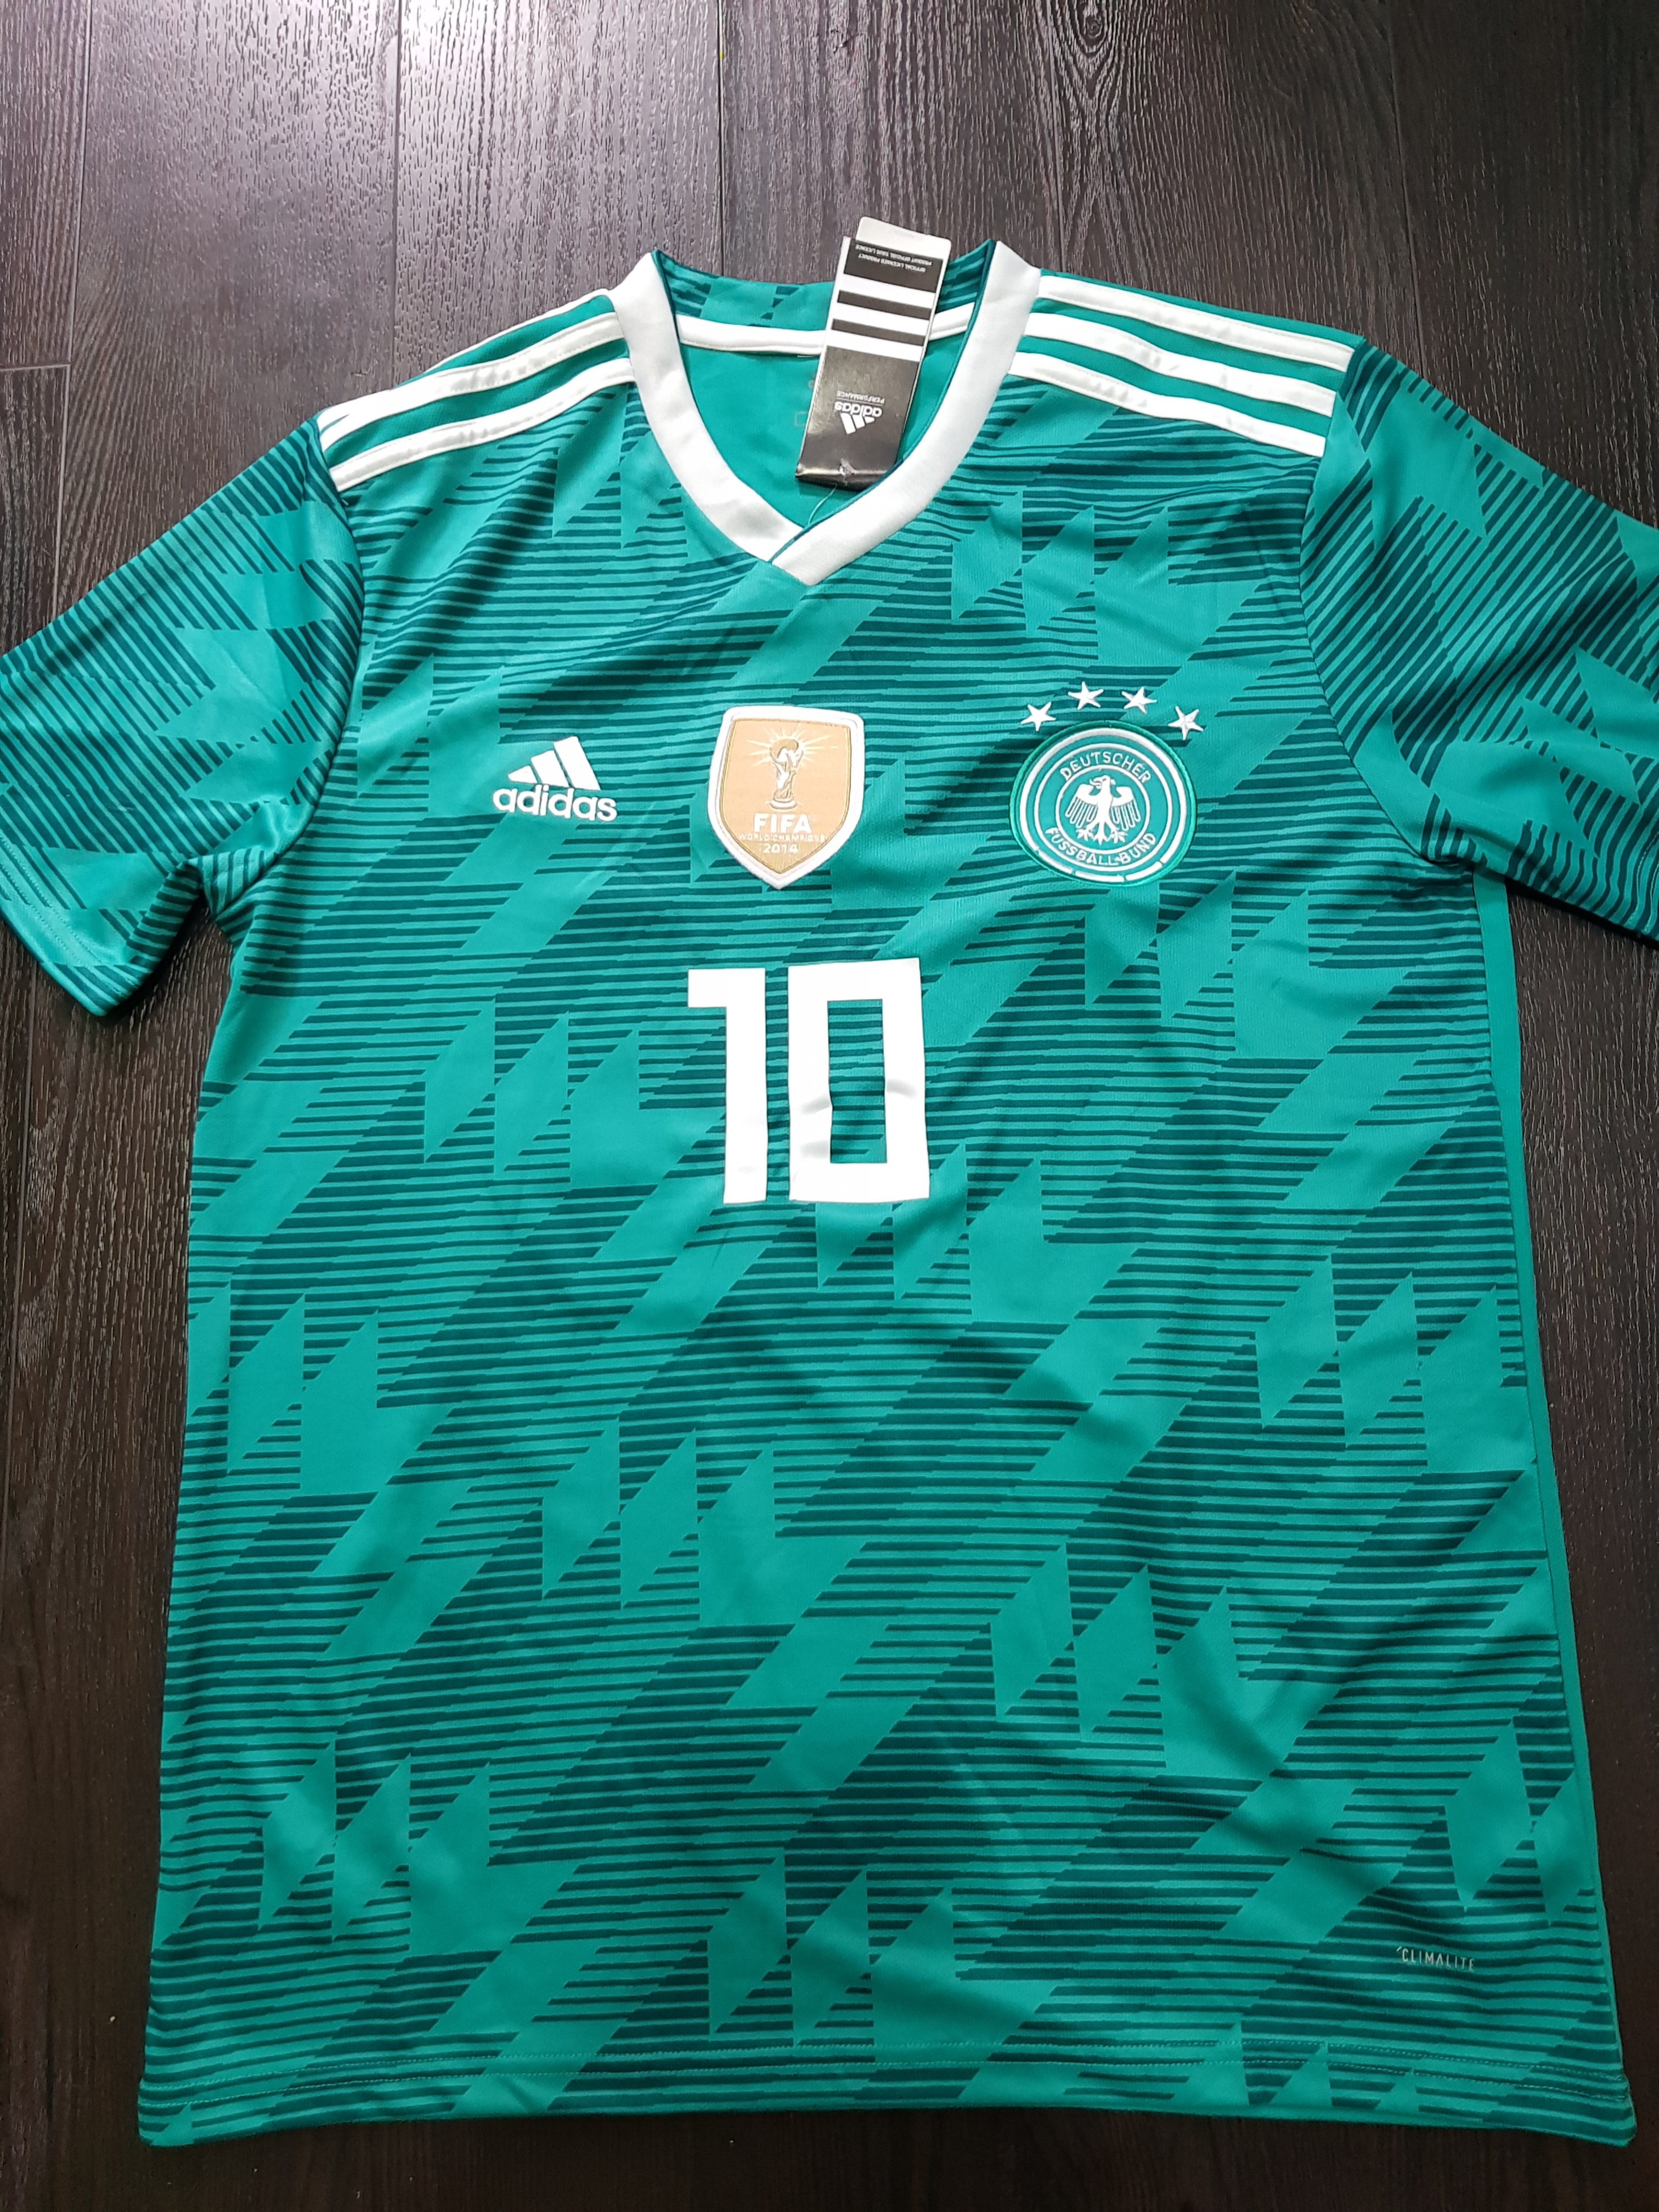 2be07a5e7 2014 Adidas Germany World Cup Winners T Shirt